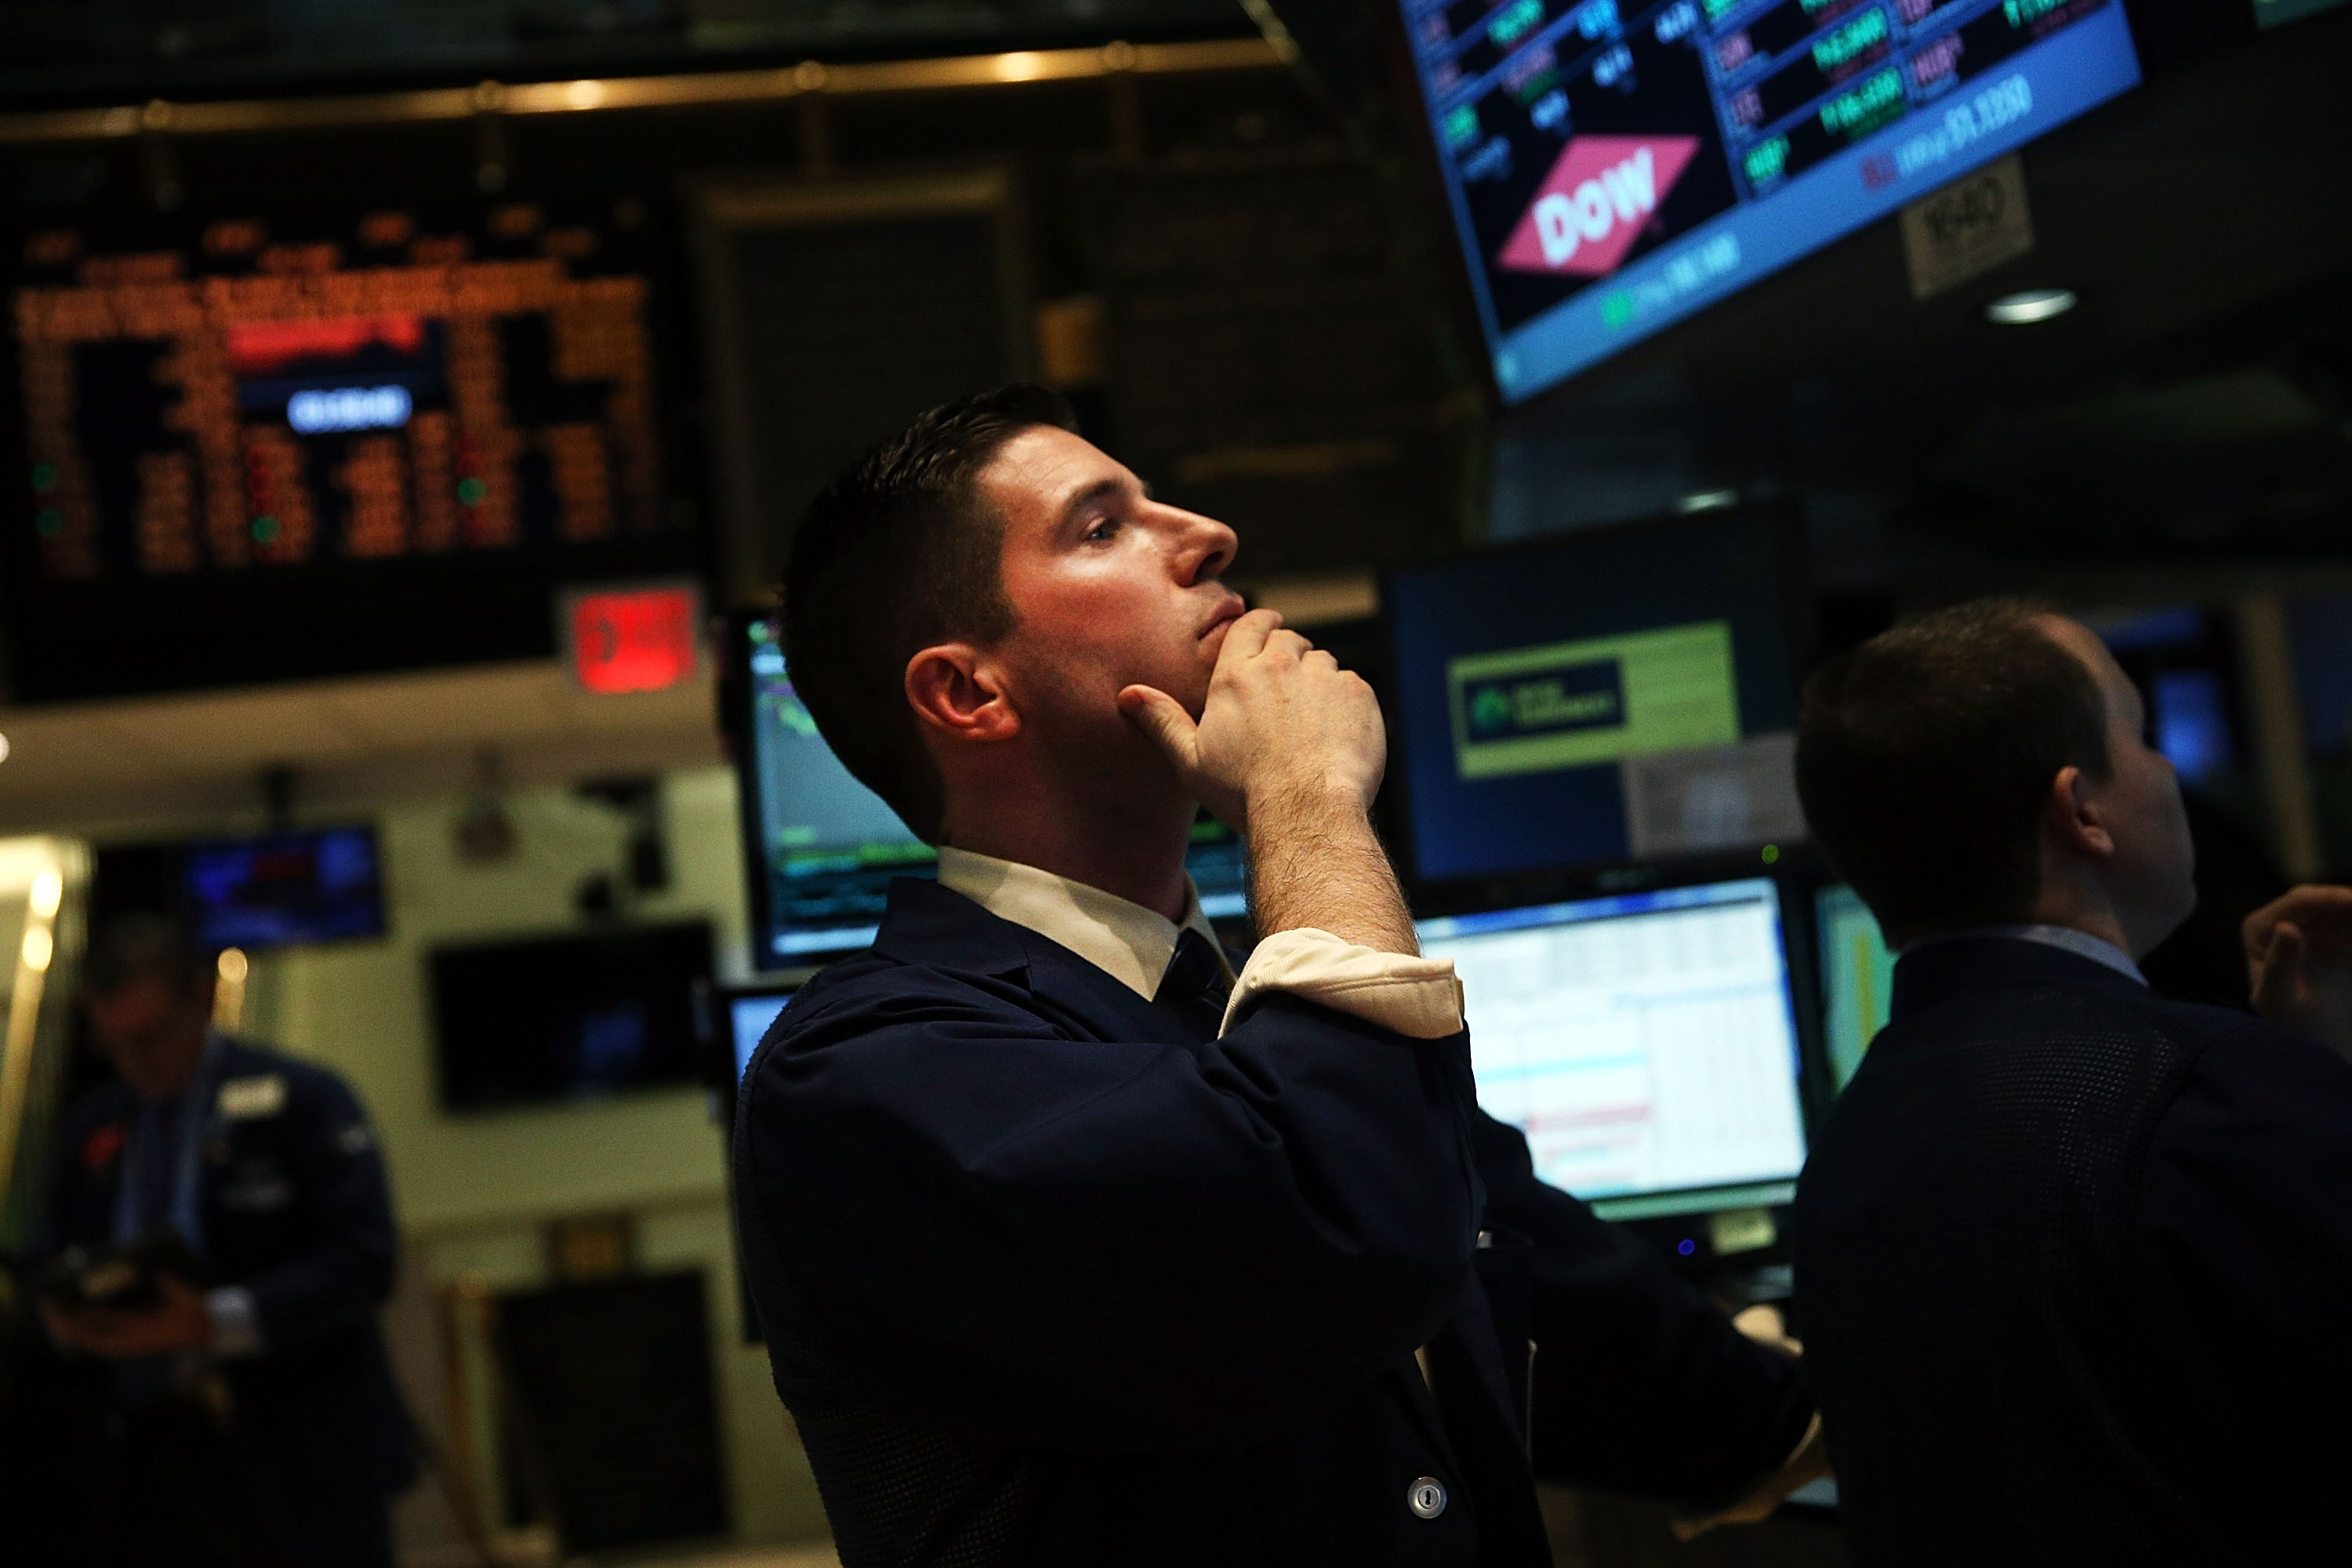 Dow Jones Average Slips Downward As Traders React To Selloff In Emerging Markets